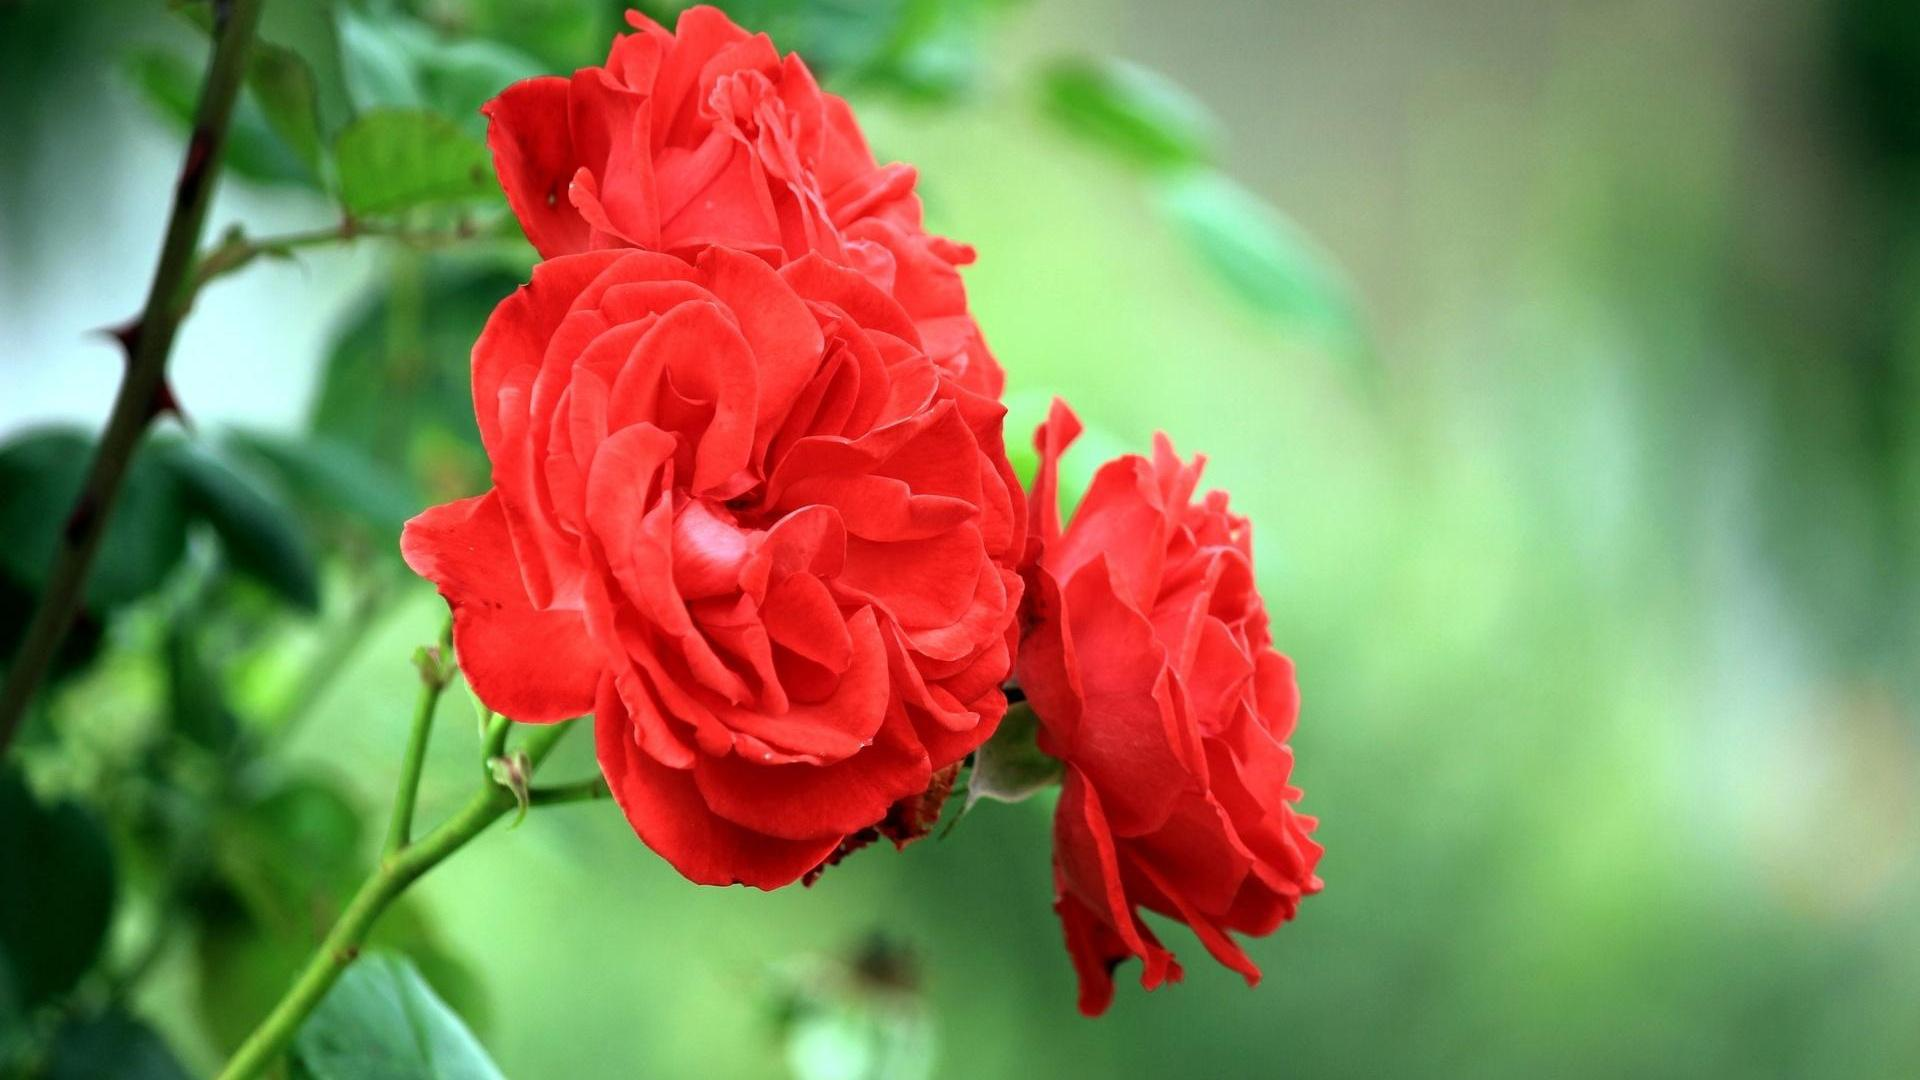 Knumathise Red Rose Flower Garden Wallpaper Images